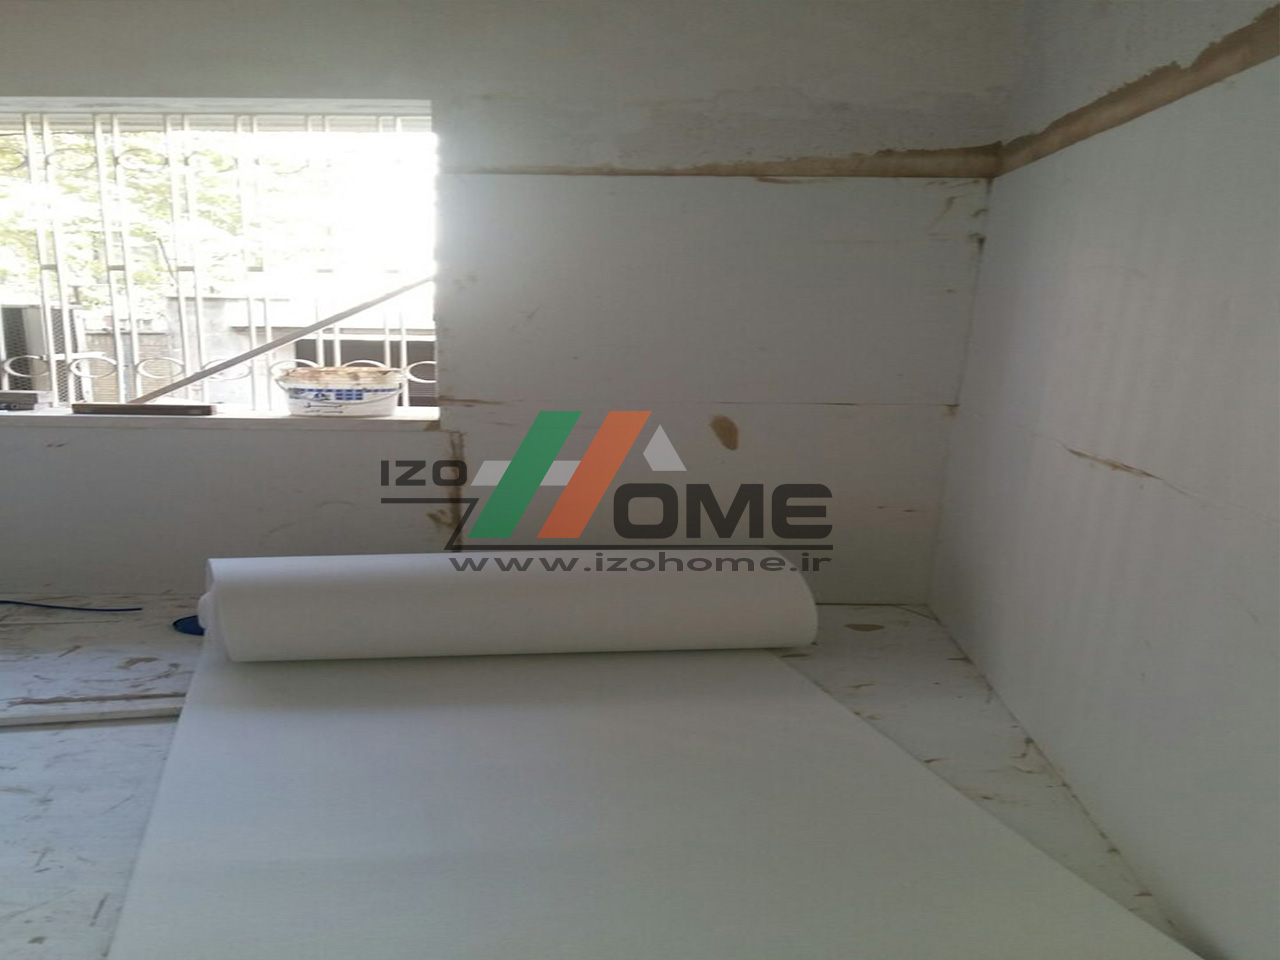 izohome52 - Sound insulation for the floor